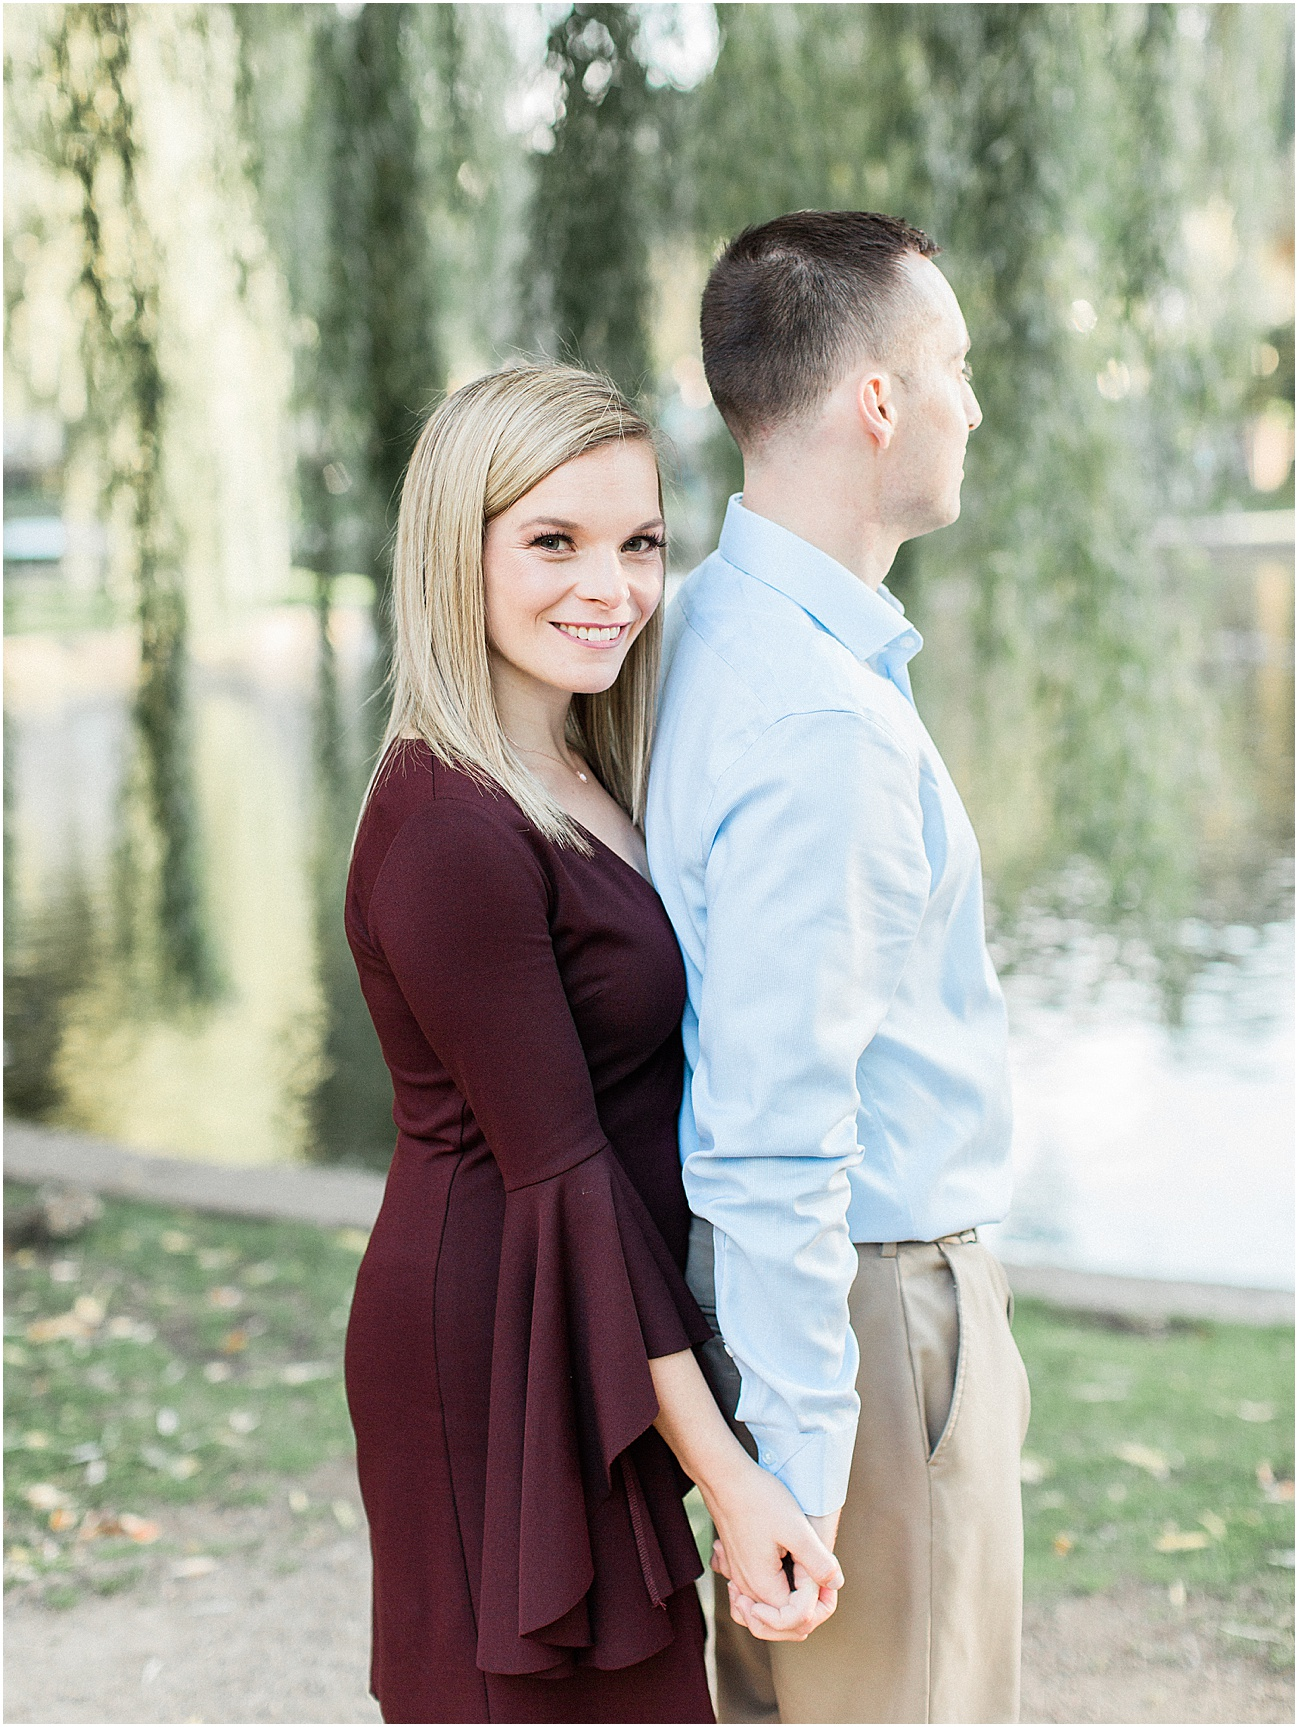 jenny_jared_beacon_hill_acorn_street_seaport_engagement_fall_cape_cod_boston_wedding_photographer_meredith_jane_photography_photo_1548.jpg